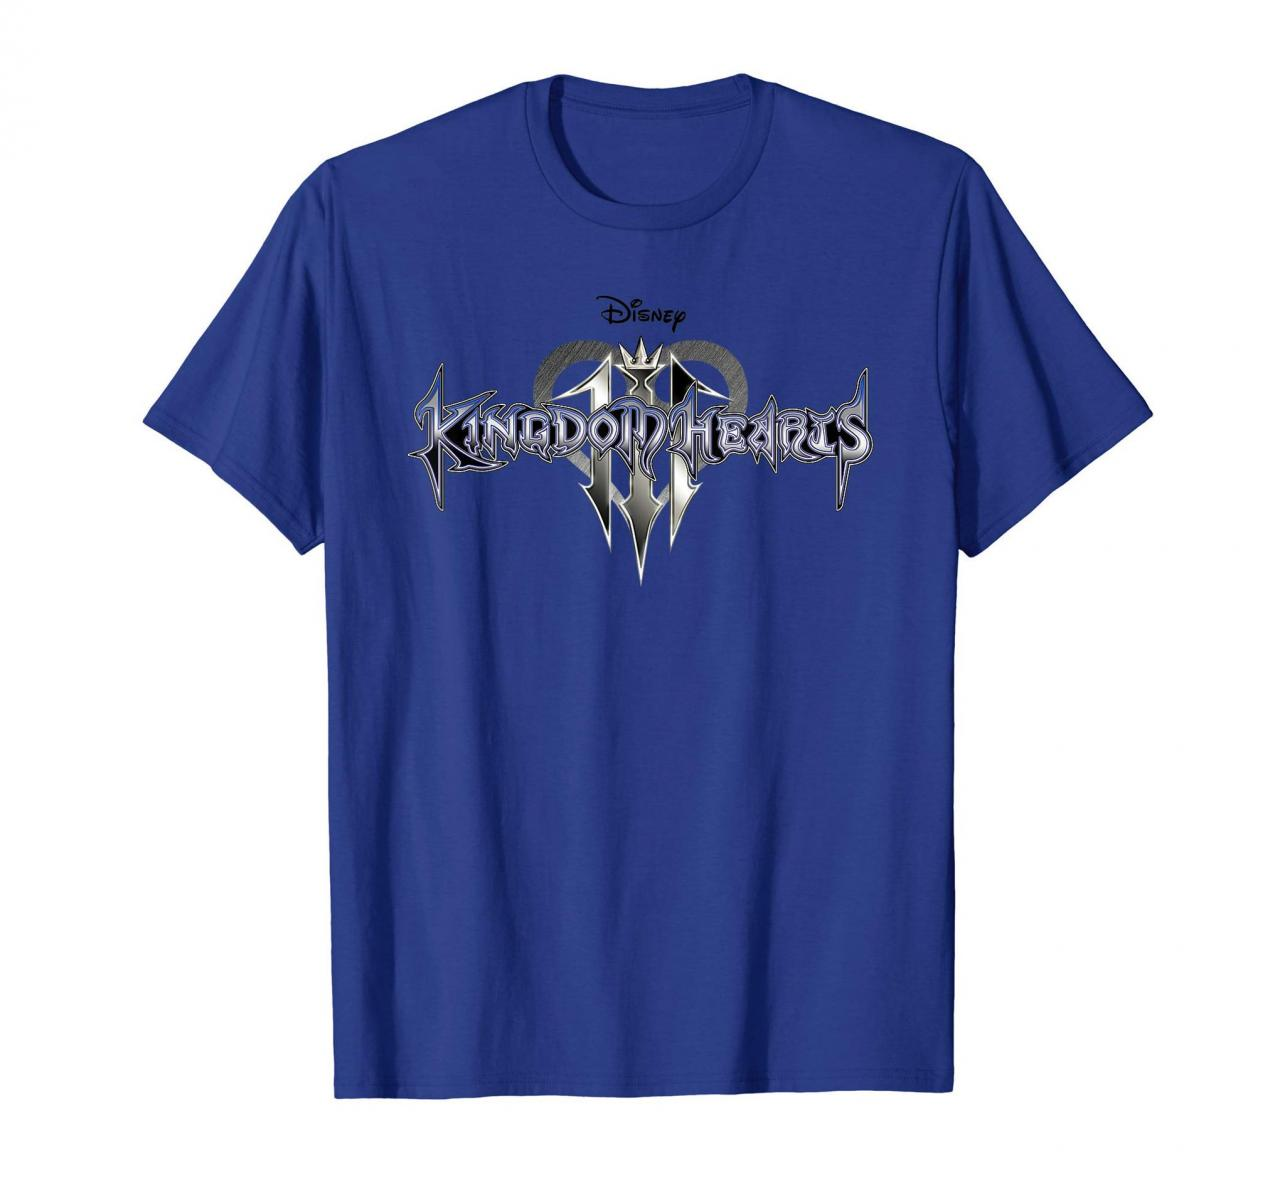 Official Amazon Kingdom Hearts III shirts